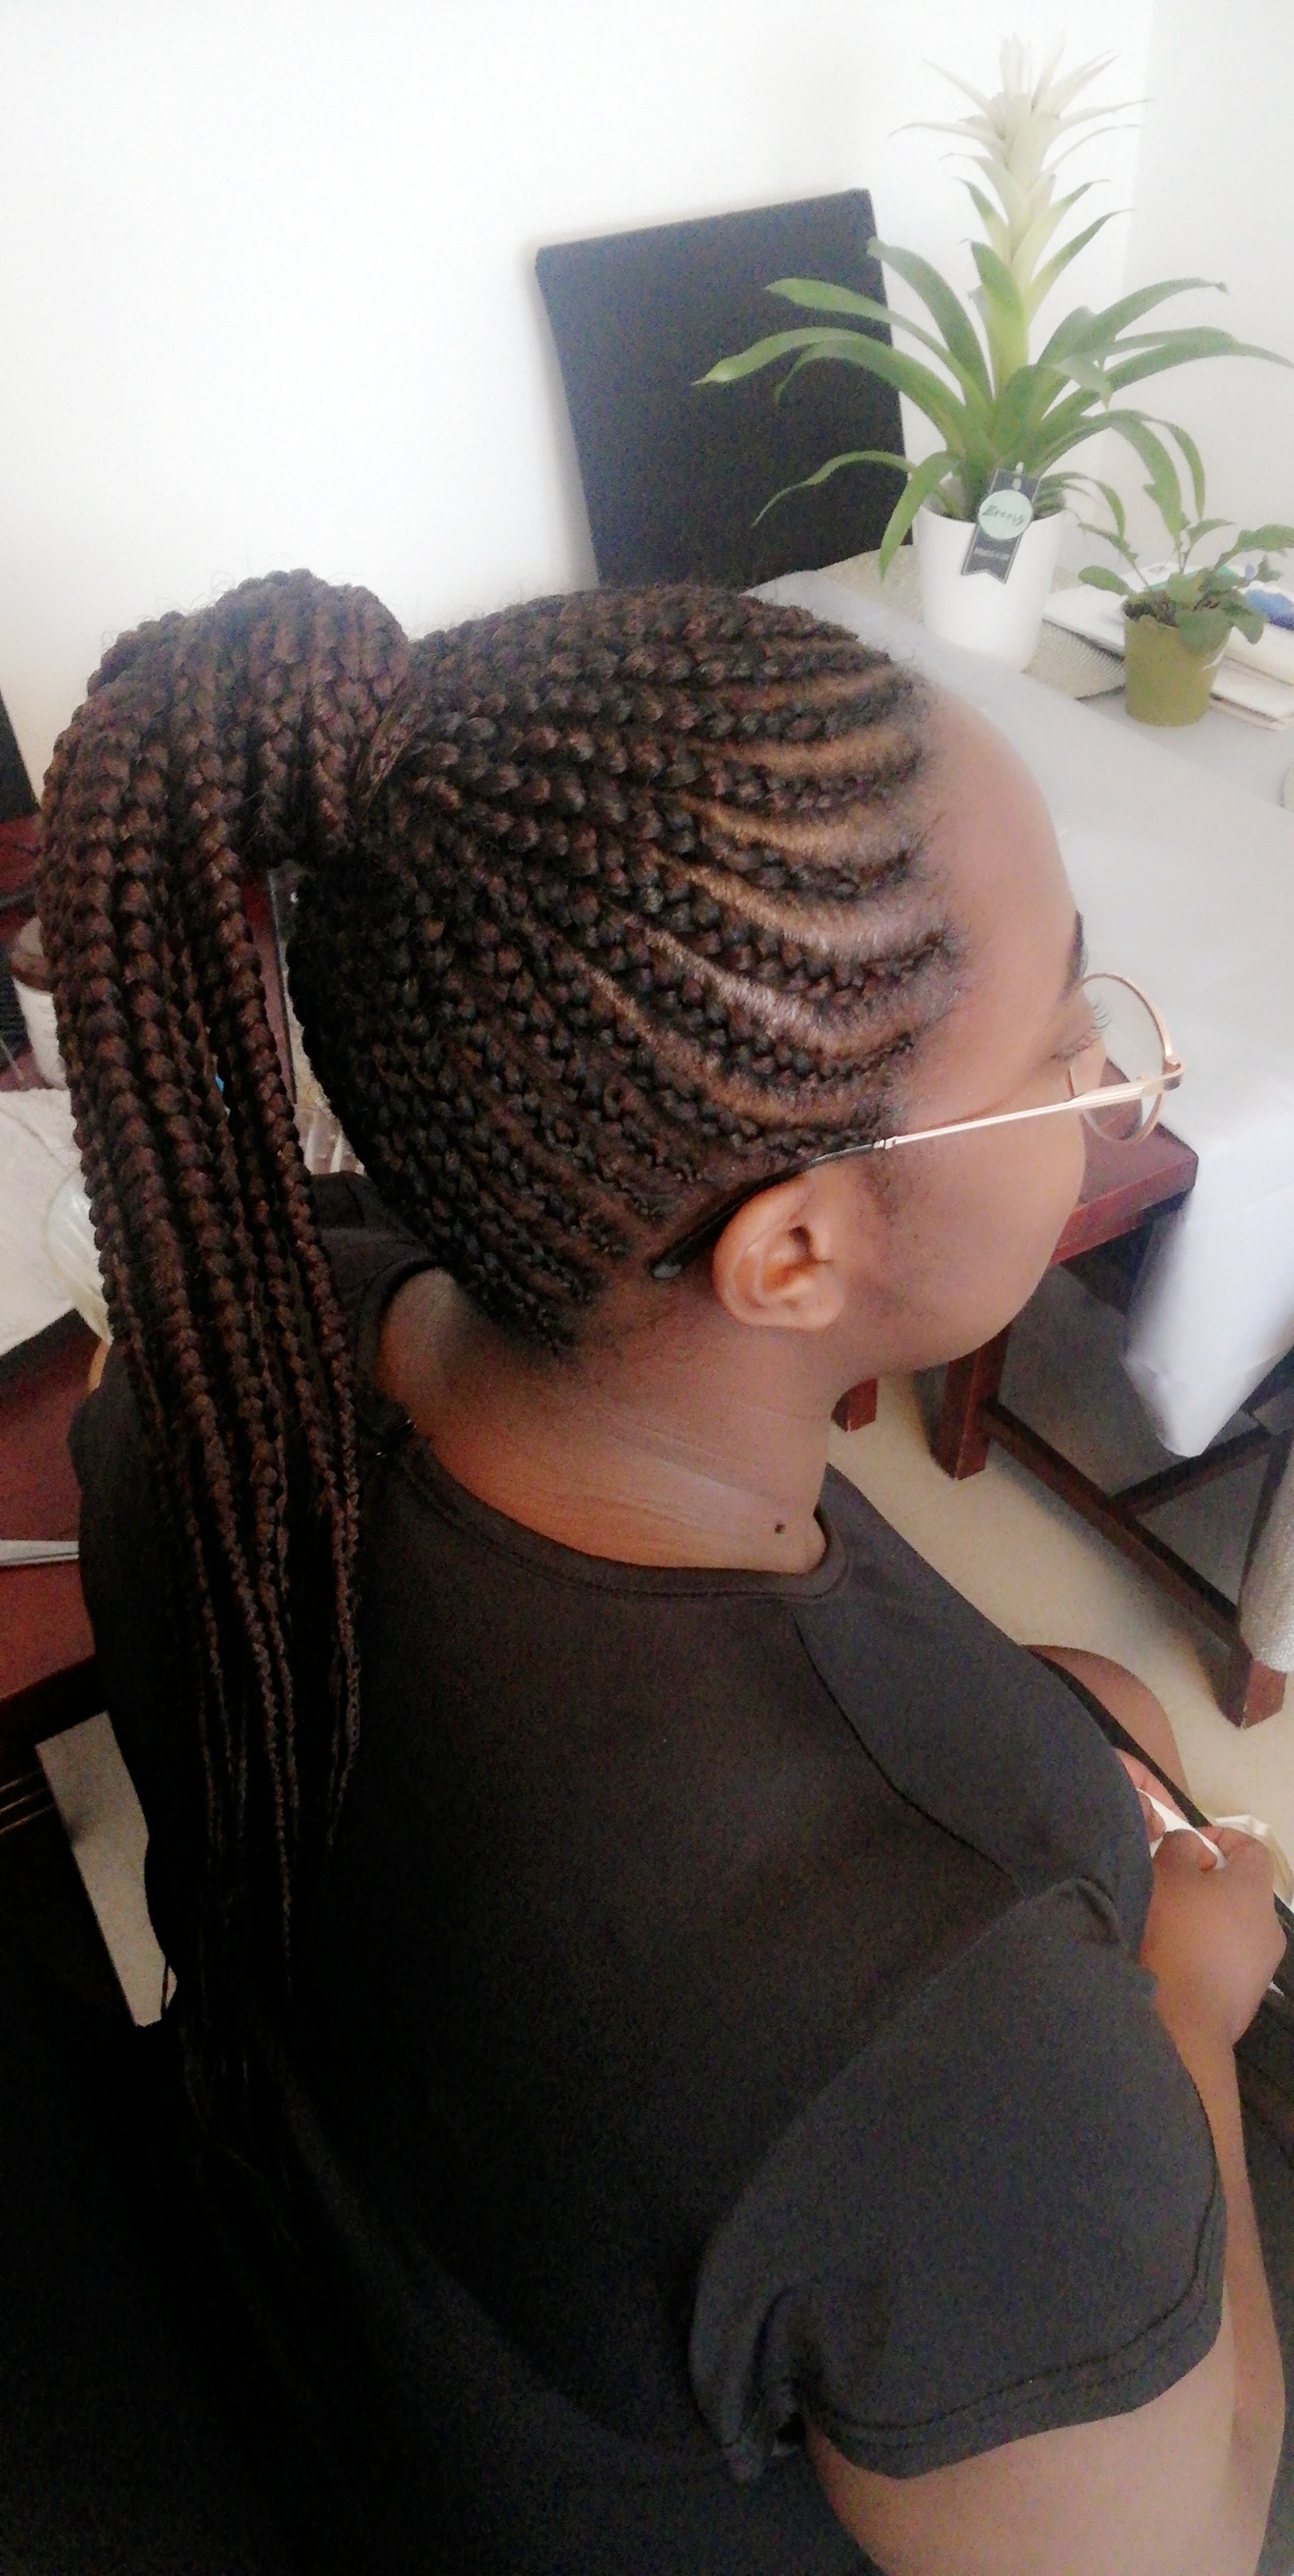 salon de coiffure afro tresse tresses box braids crochet braids vanilles tissages paris 75 77 78 91 92 93 94 95 ZVIUEOZV